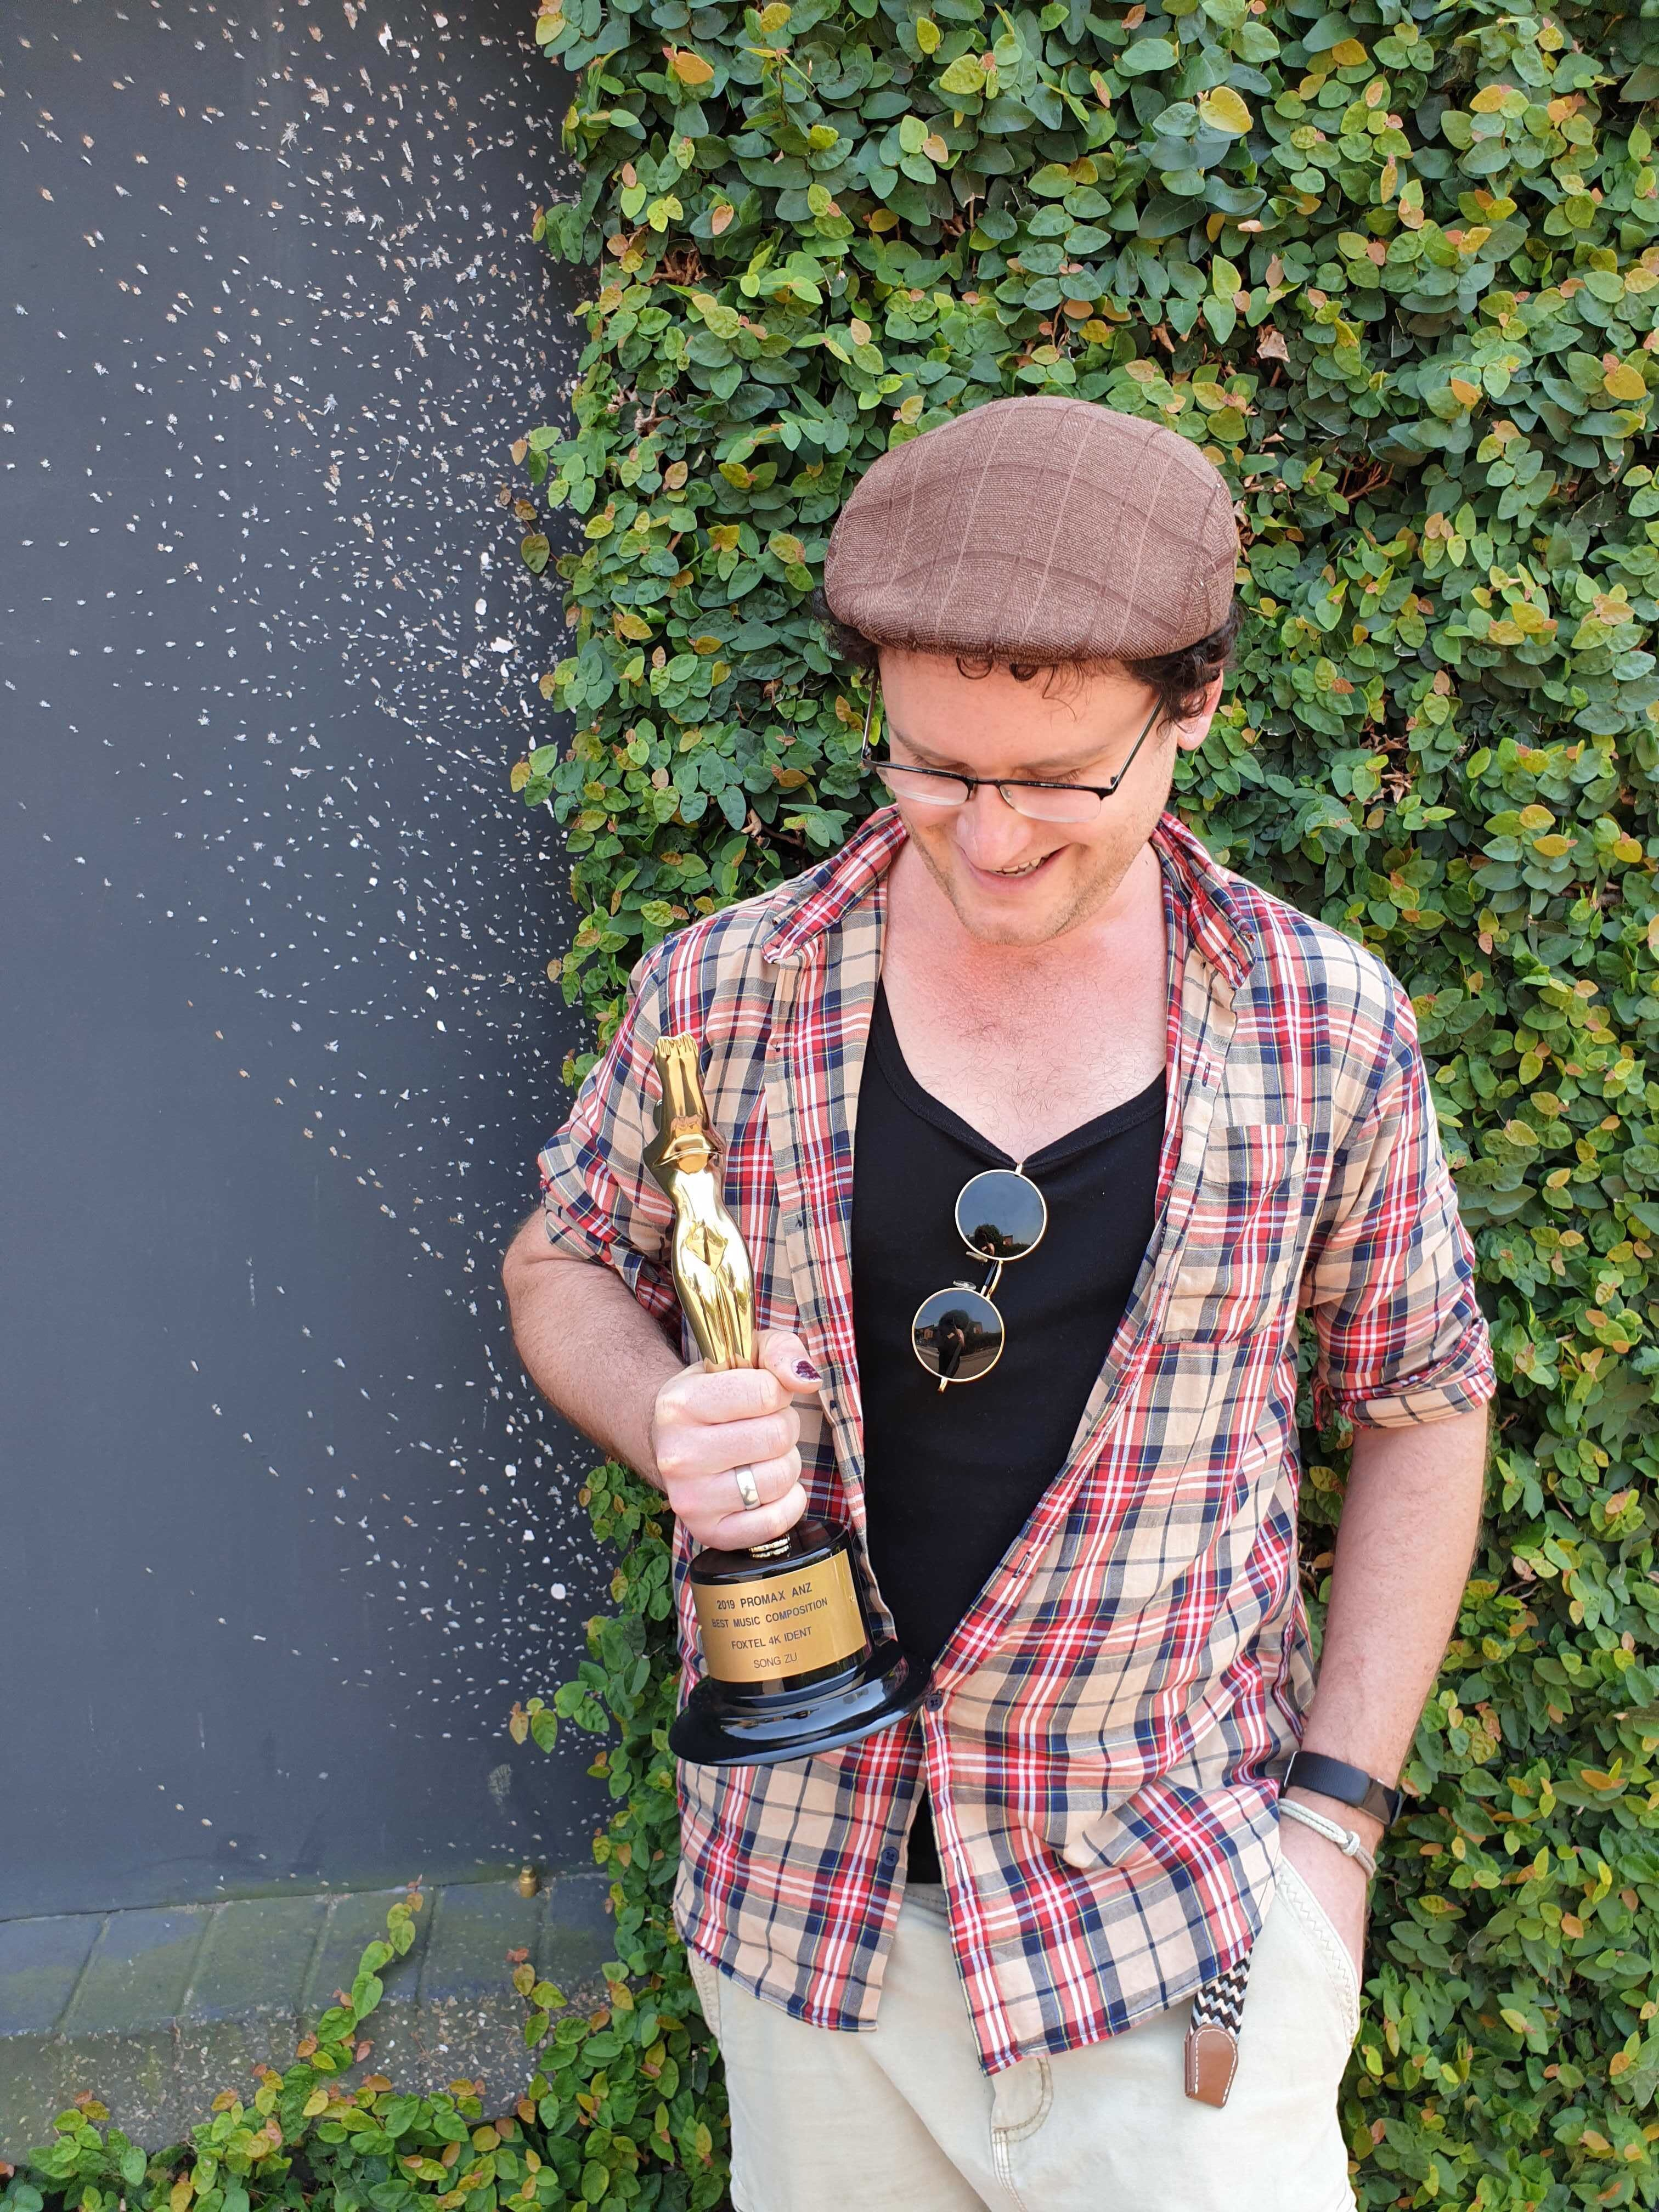 Song Zu composer Adrian Sergovich wins APRA / AMCOS Screen Music Award and Promax Gold